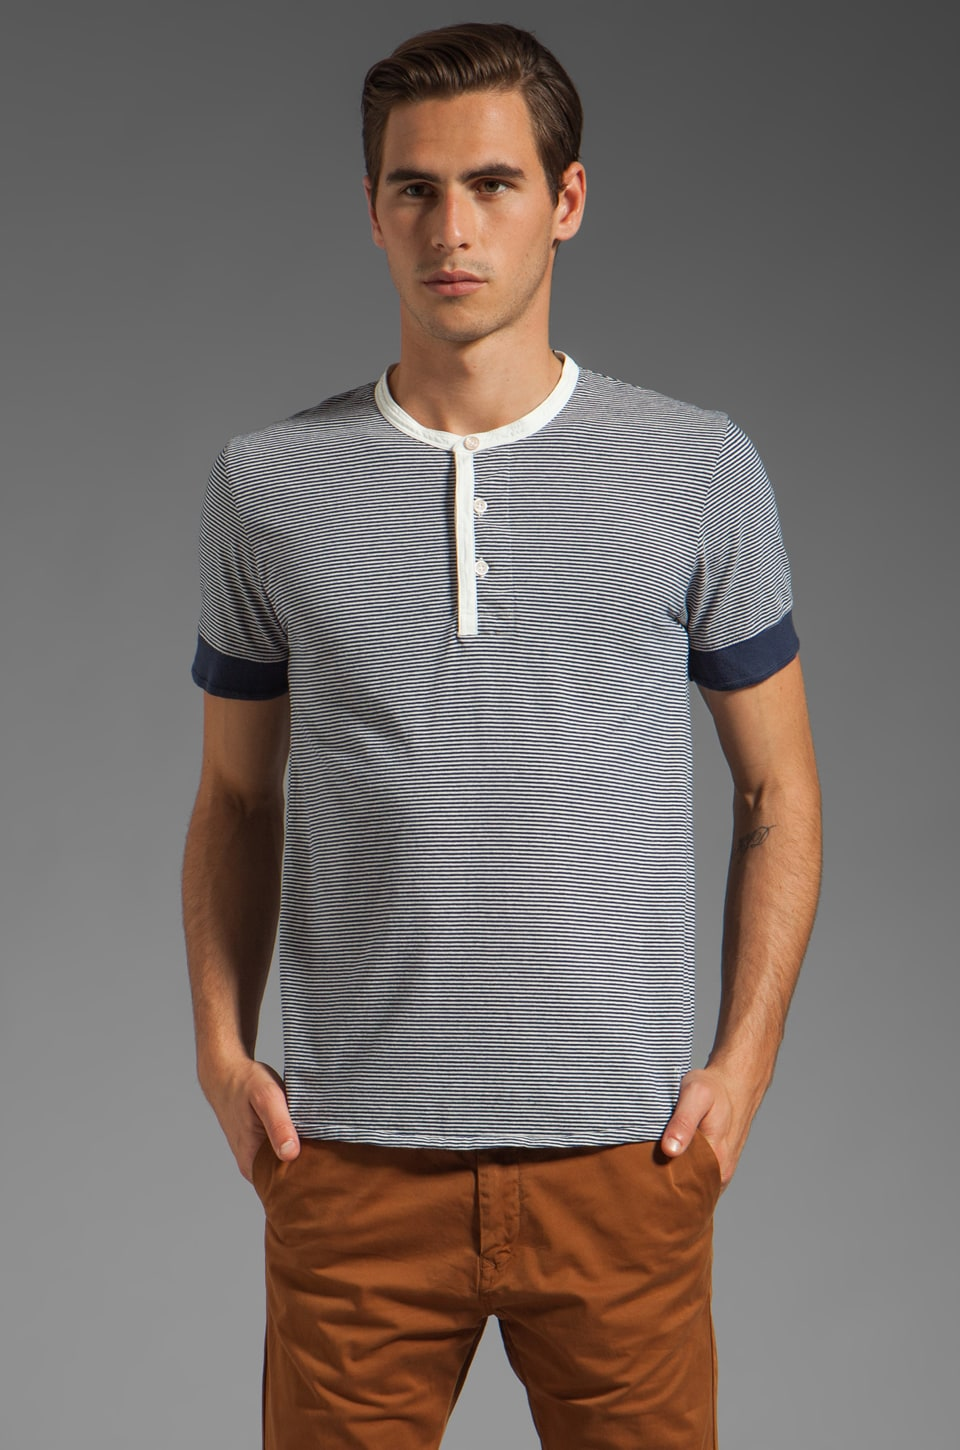 Scotch & Soda Short Sleeve Stripe Henley in Navy